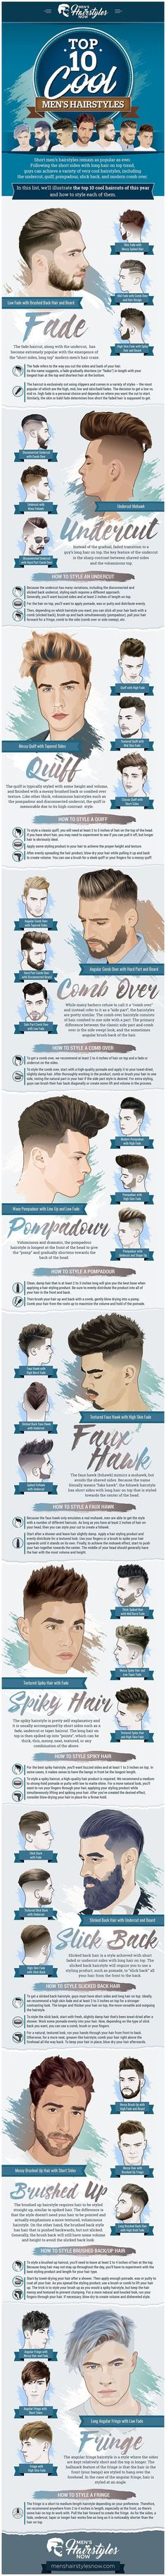 best haircuts images on pinterest in